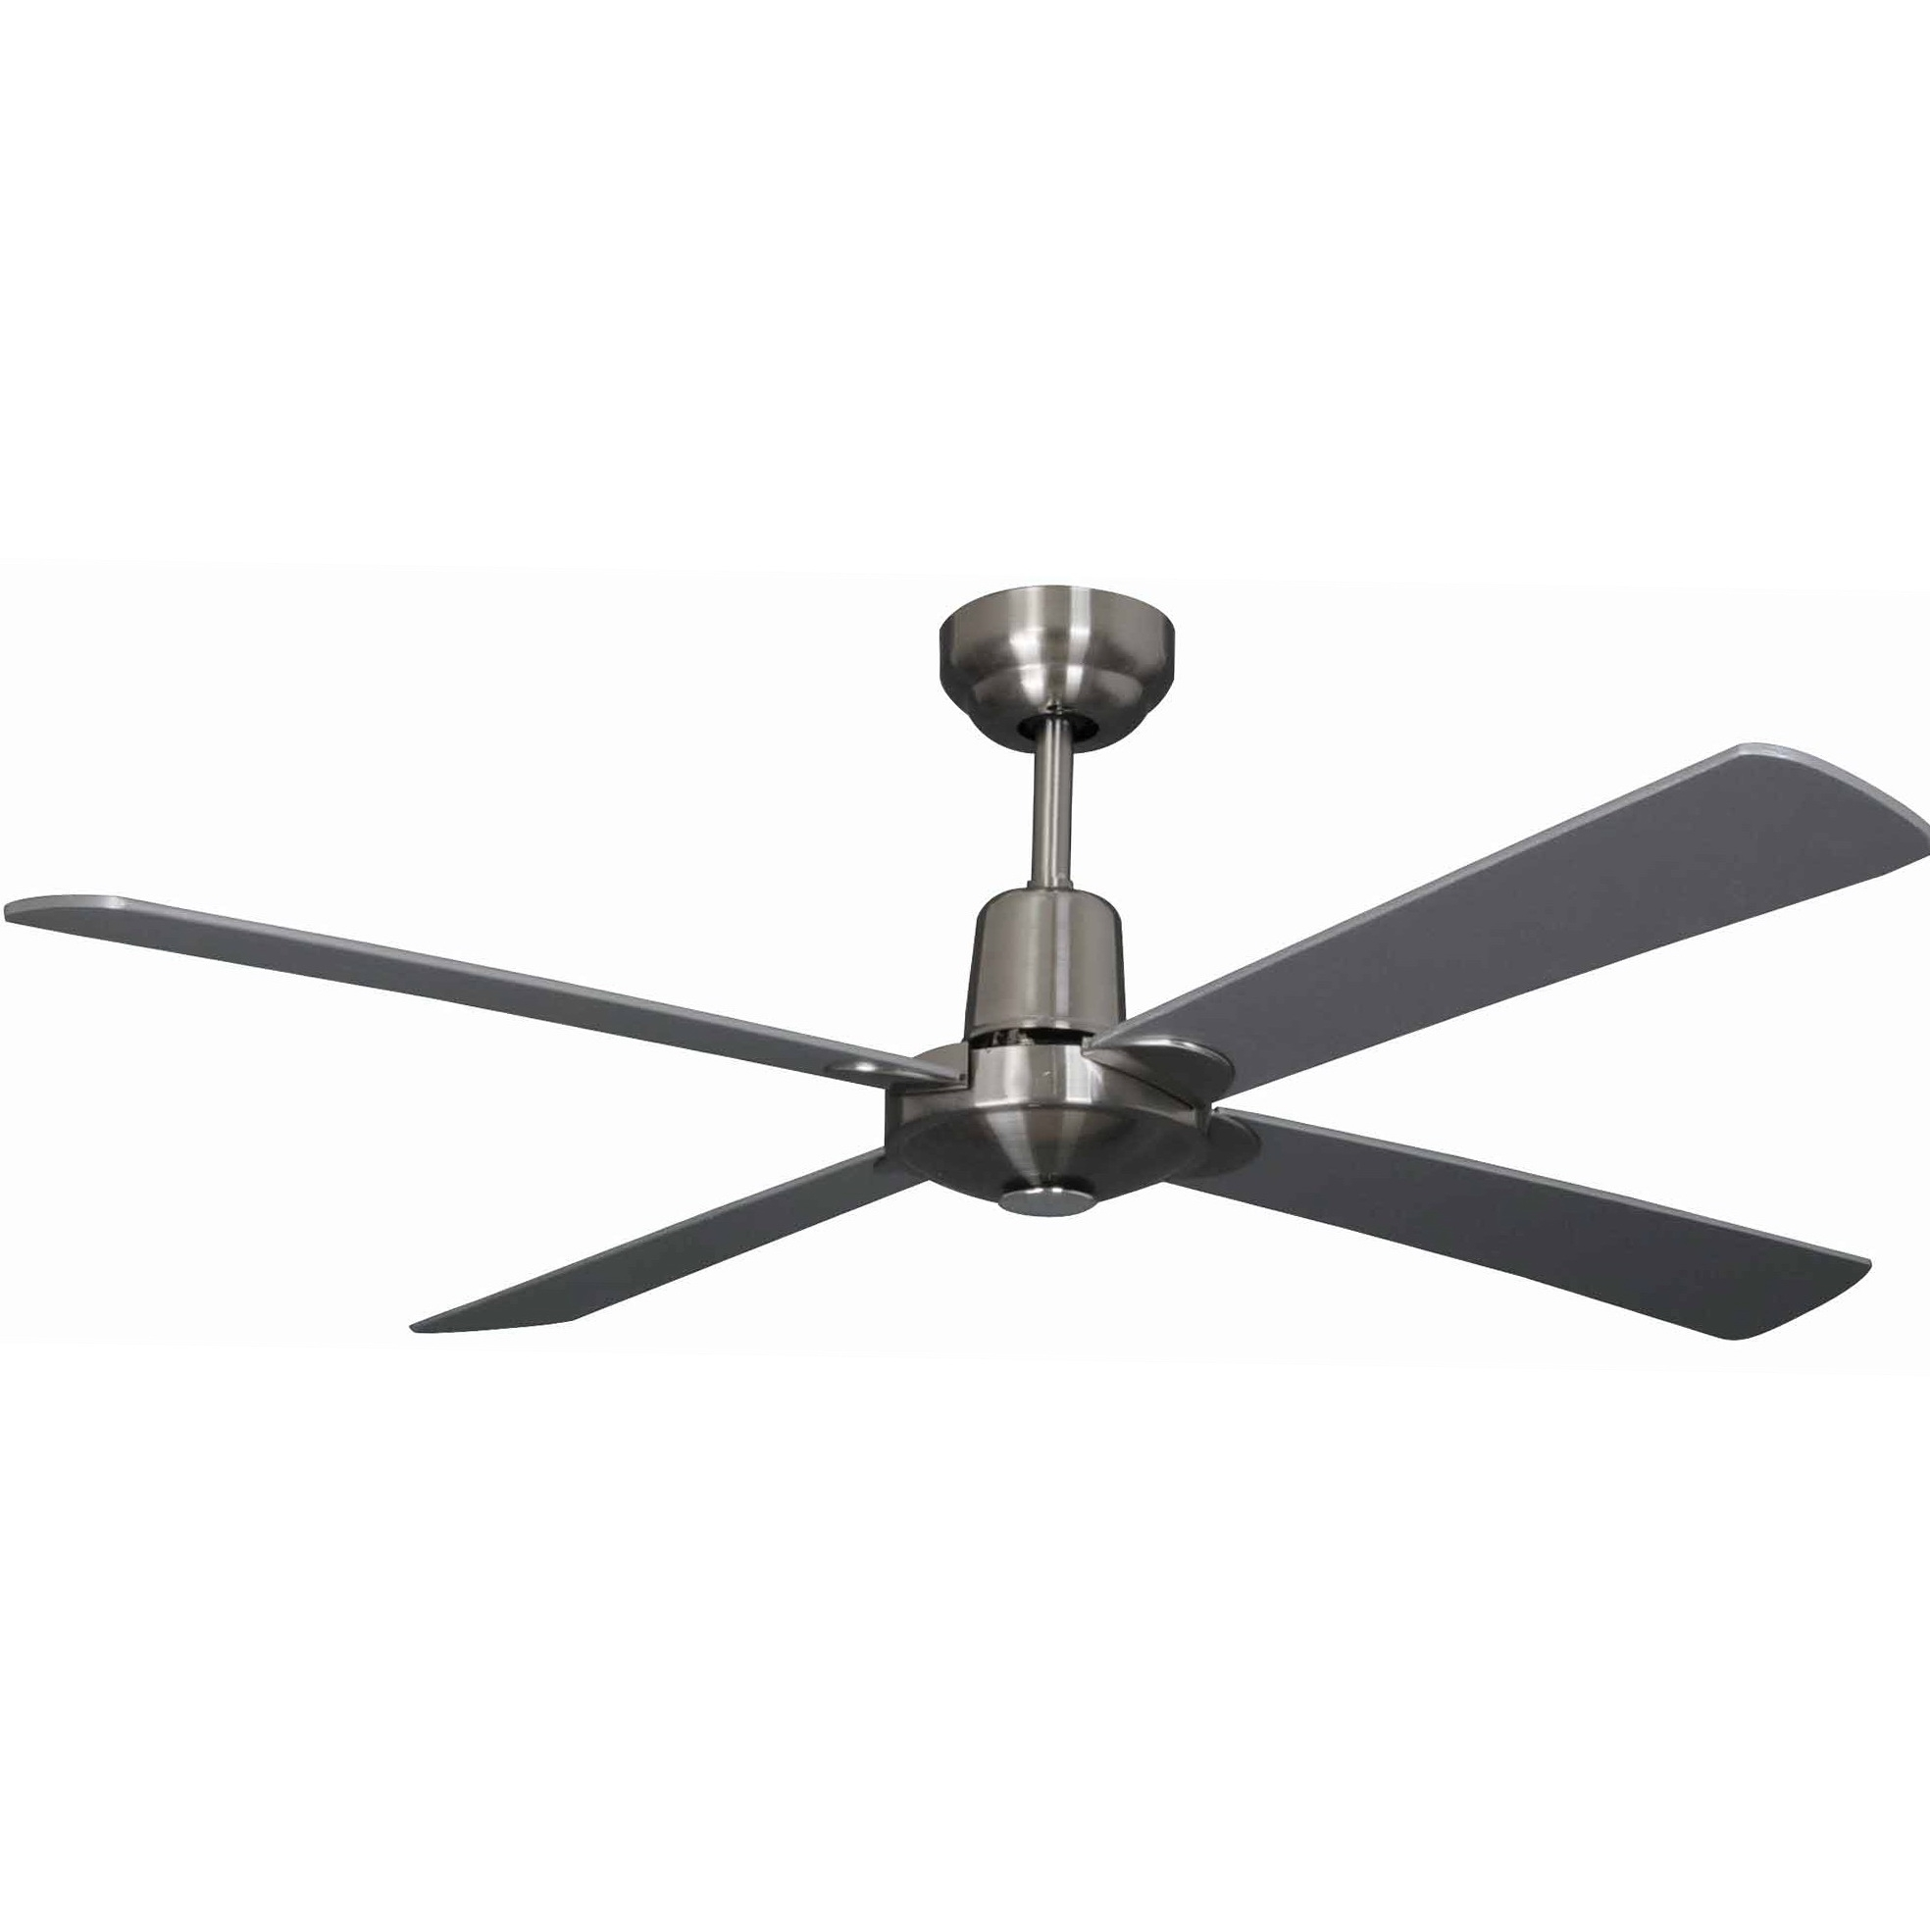 Most Recent Ceiling Fan With Light Kit And Remote Control Hugger Outdoor Fans Intended For Outdoor Ceiling Fan Lights With Remote Control (View 6 of 20)